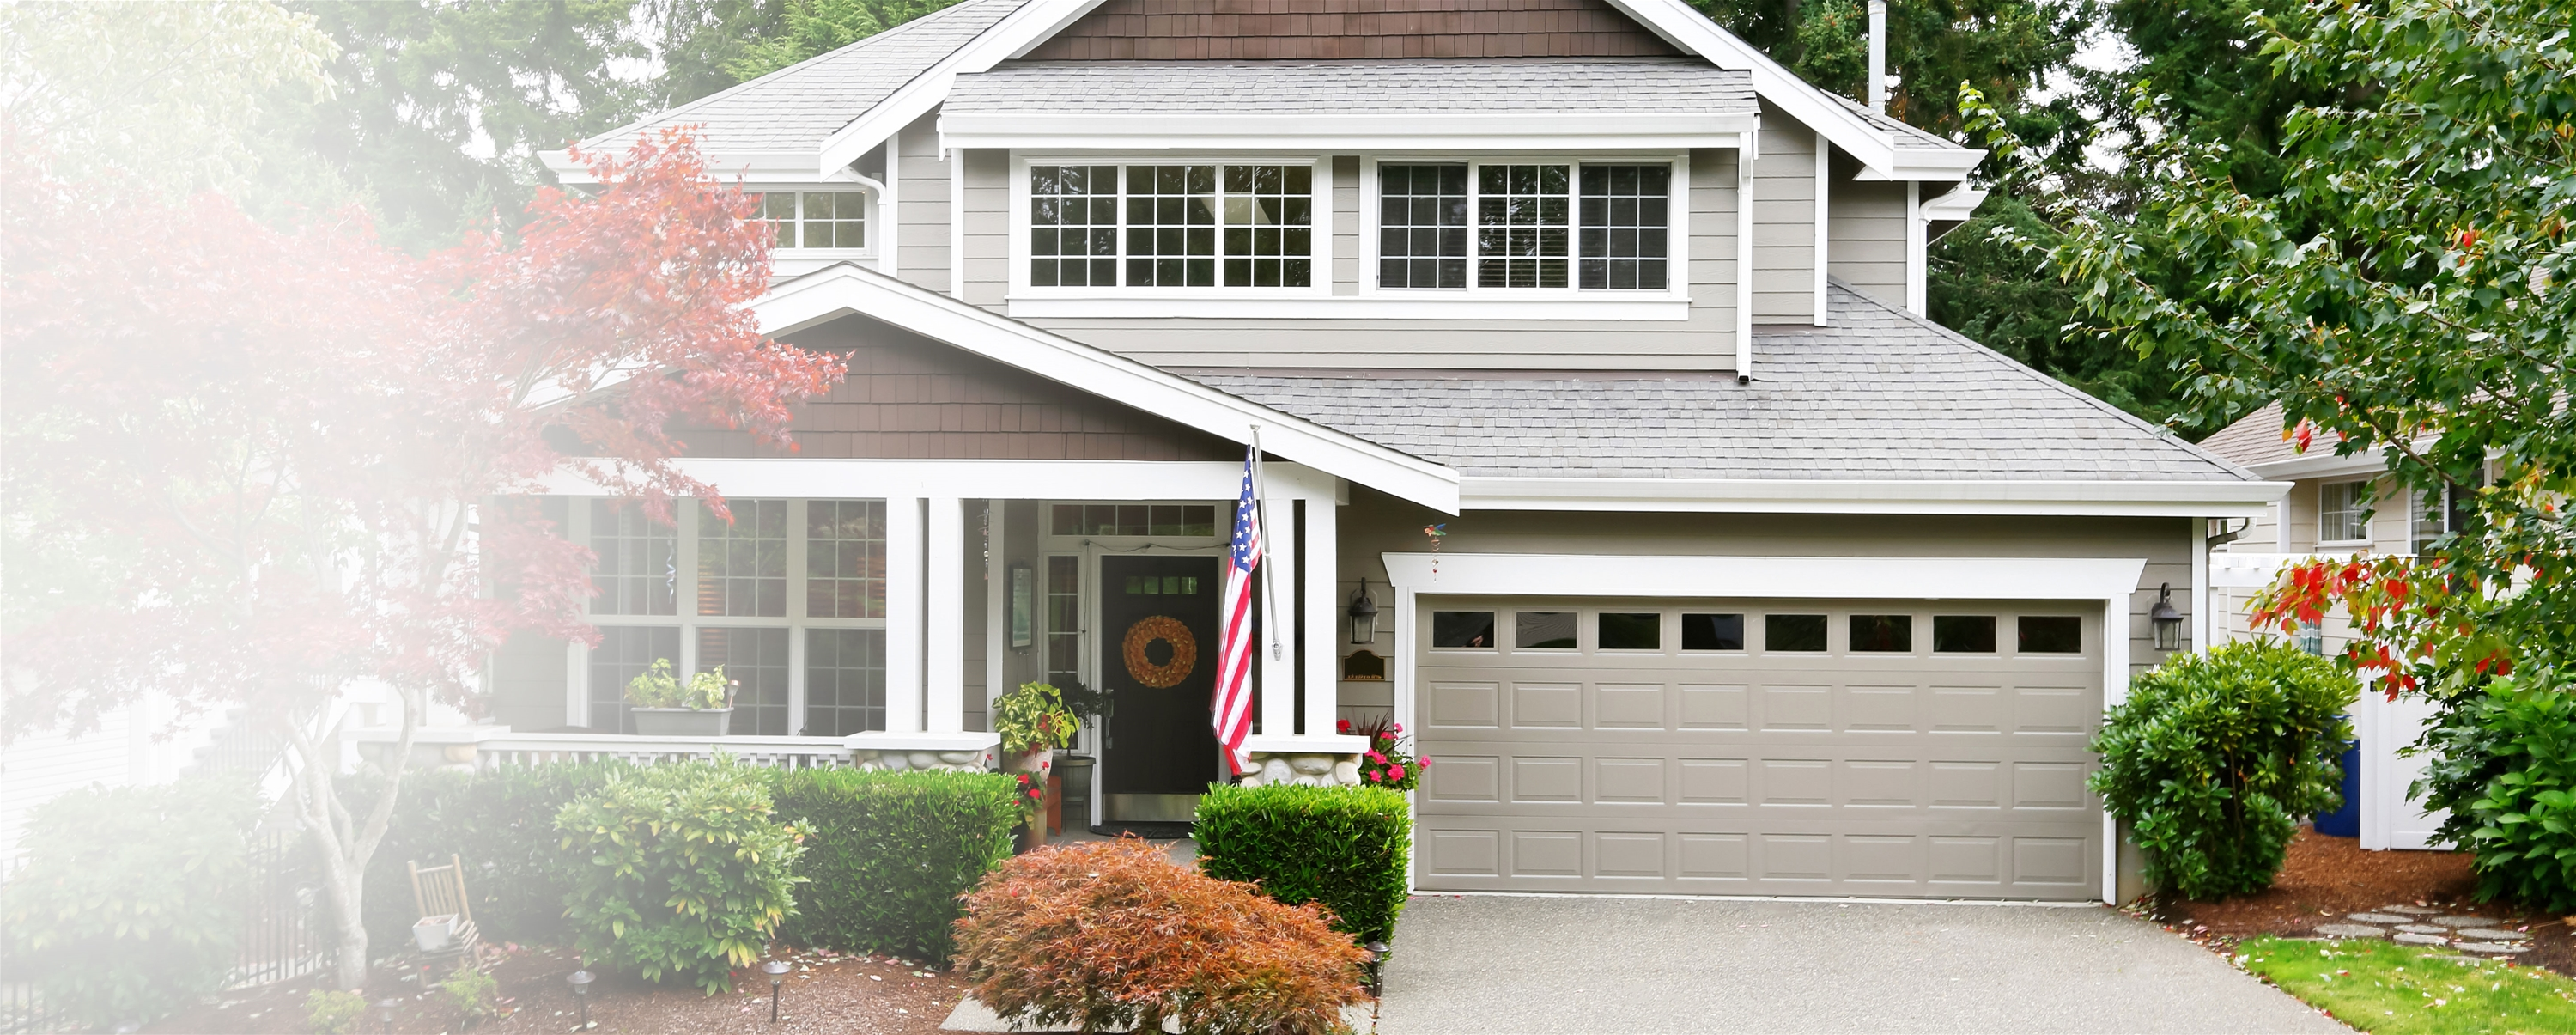 Garage Door Repair Des Plaines, IL